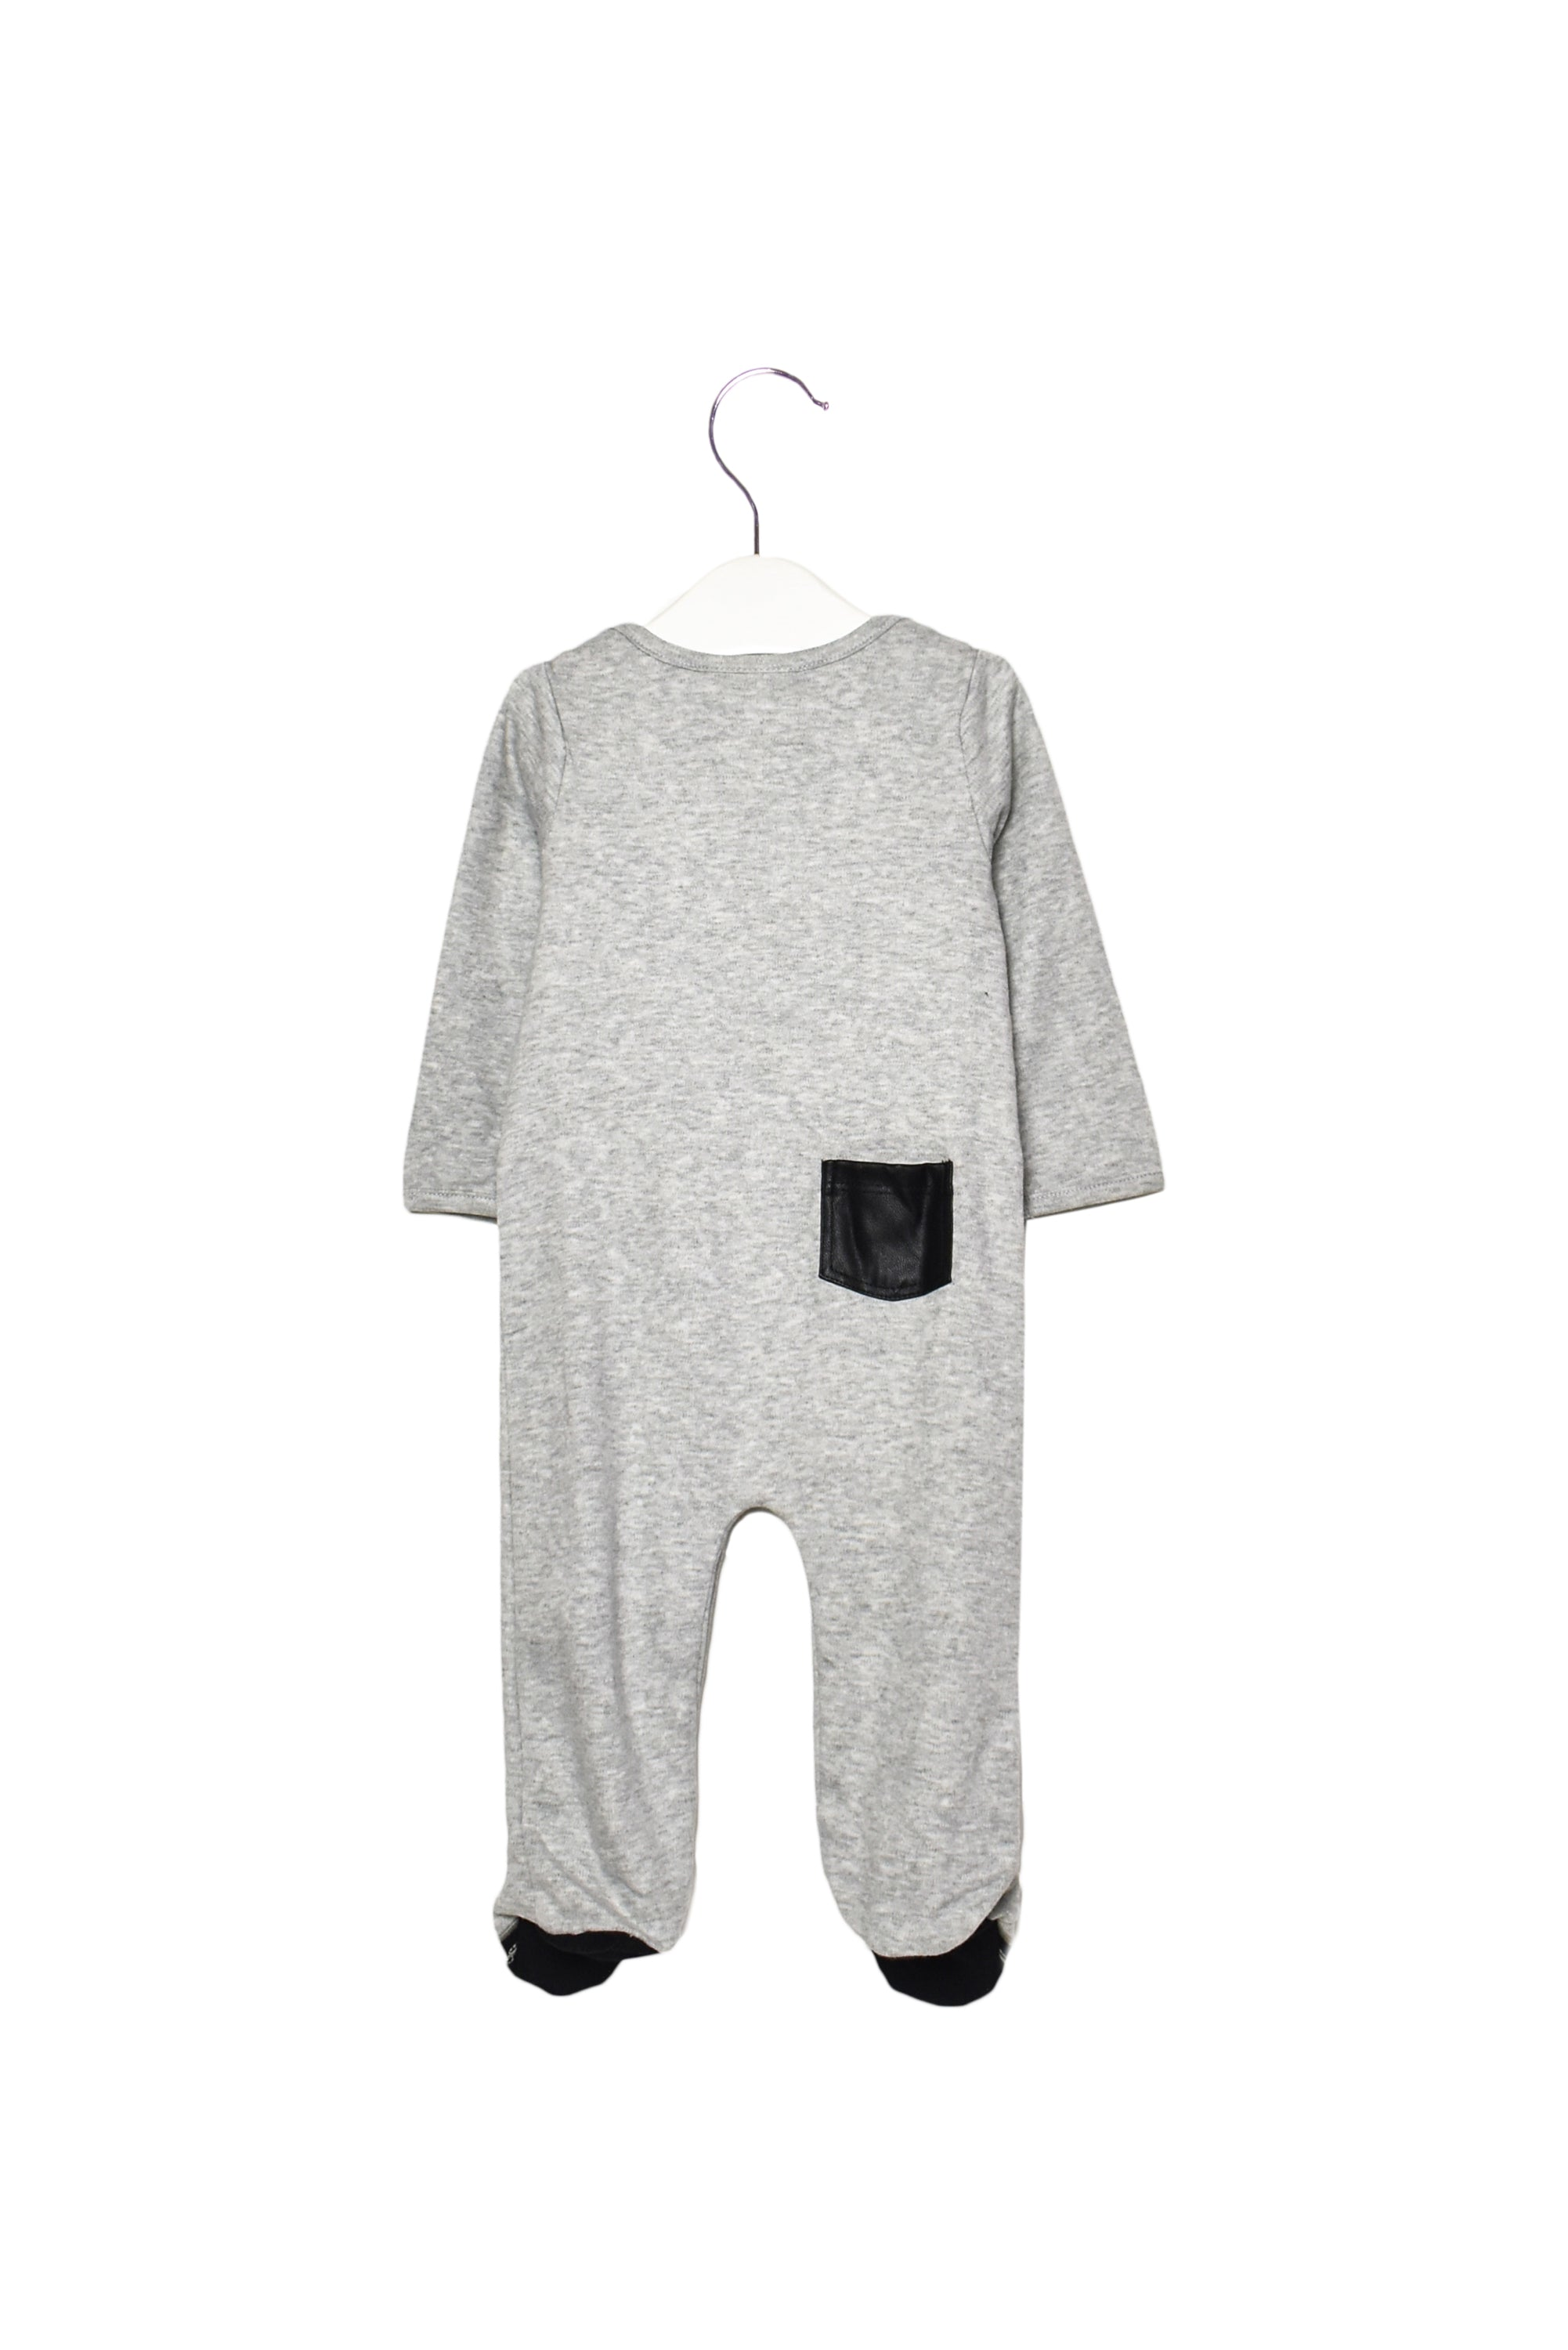 10012187 Miniclasix Baby ~ Jumpsuit 6M at Retykle